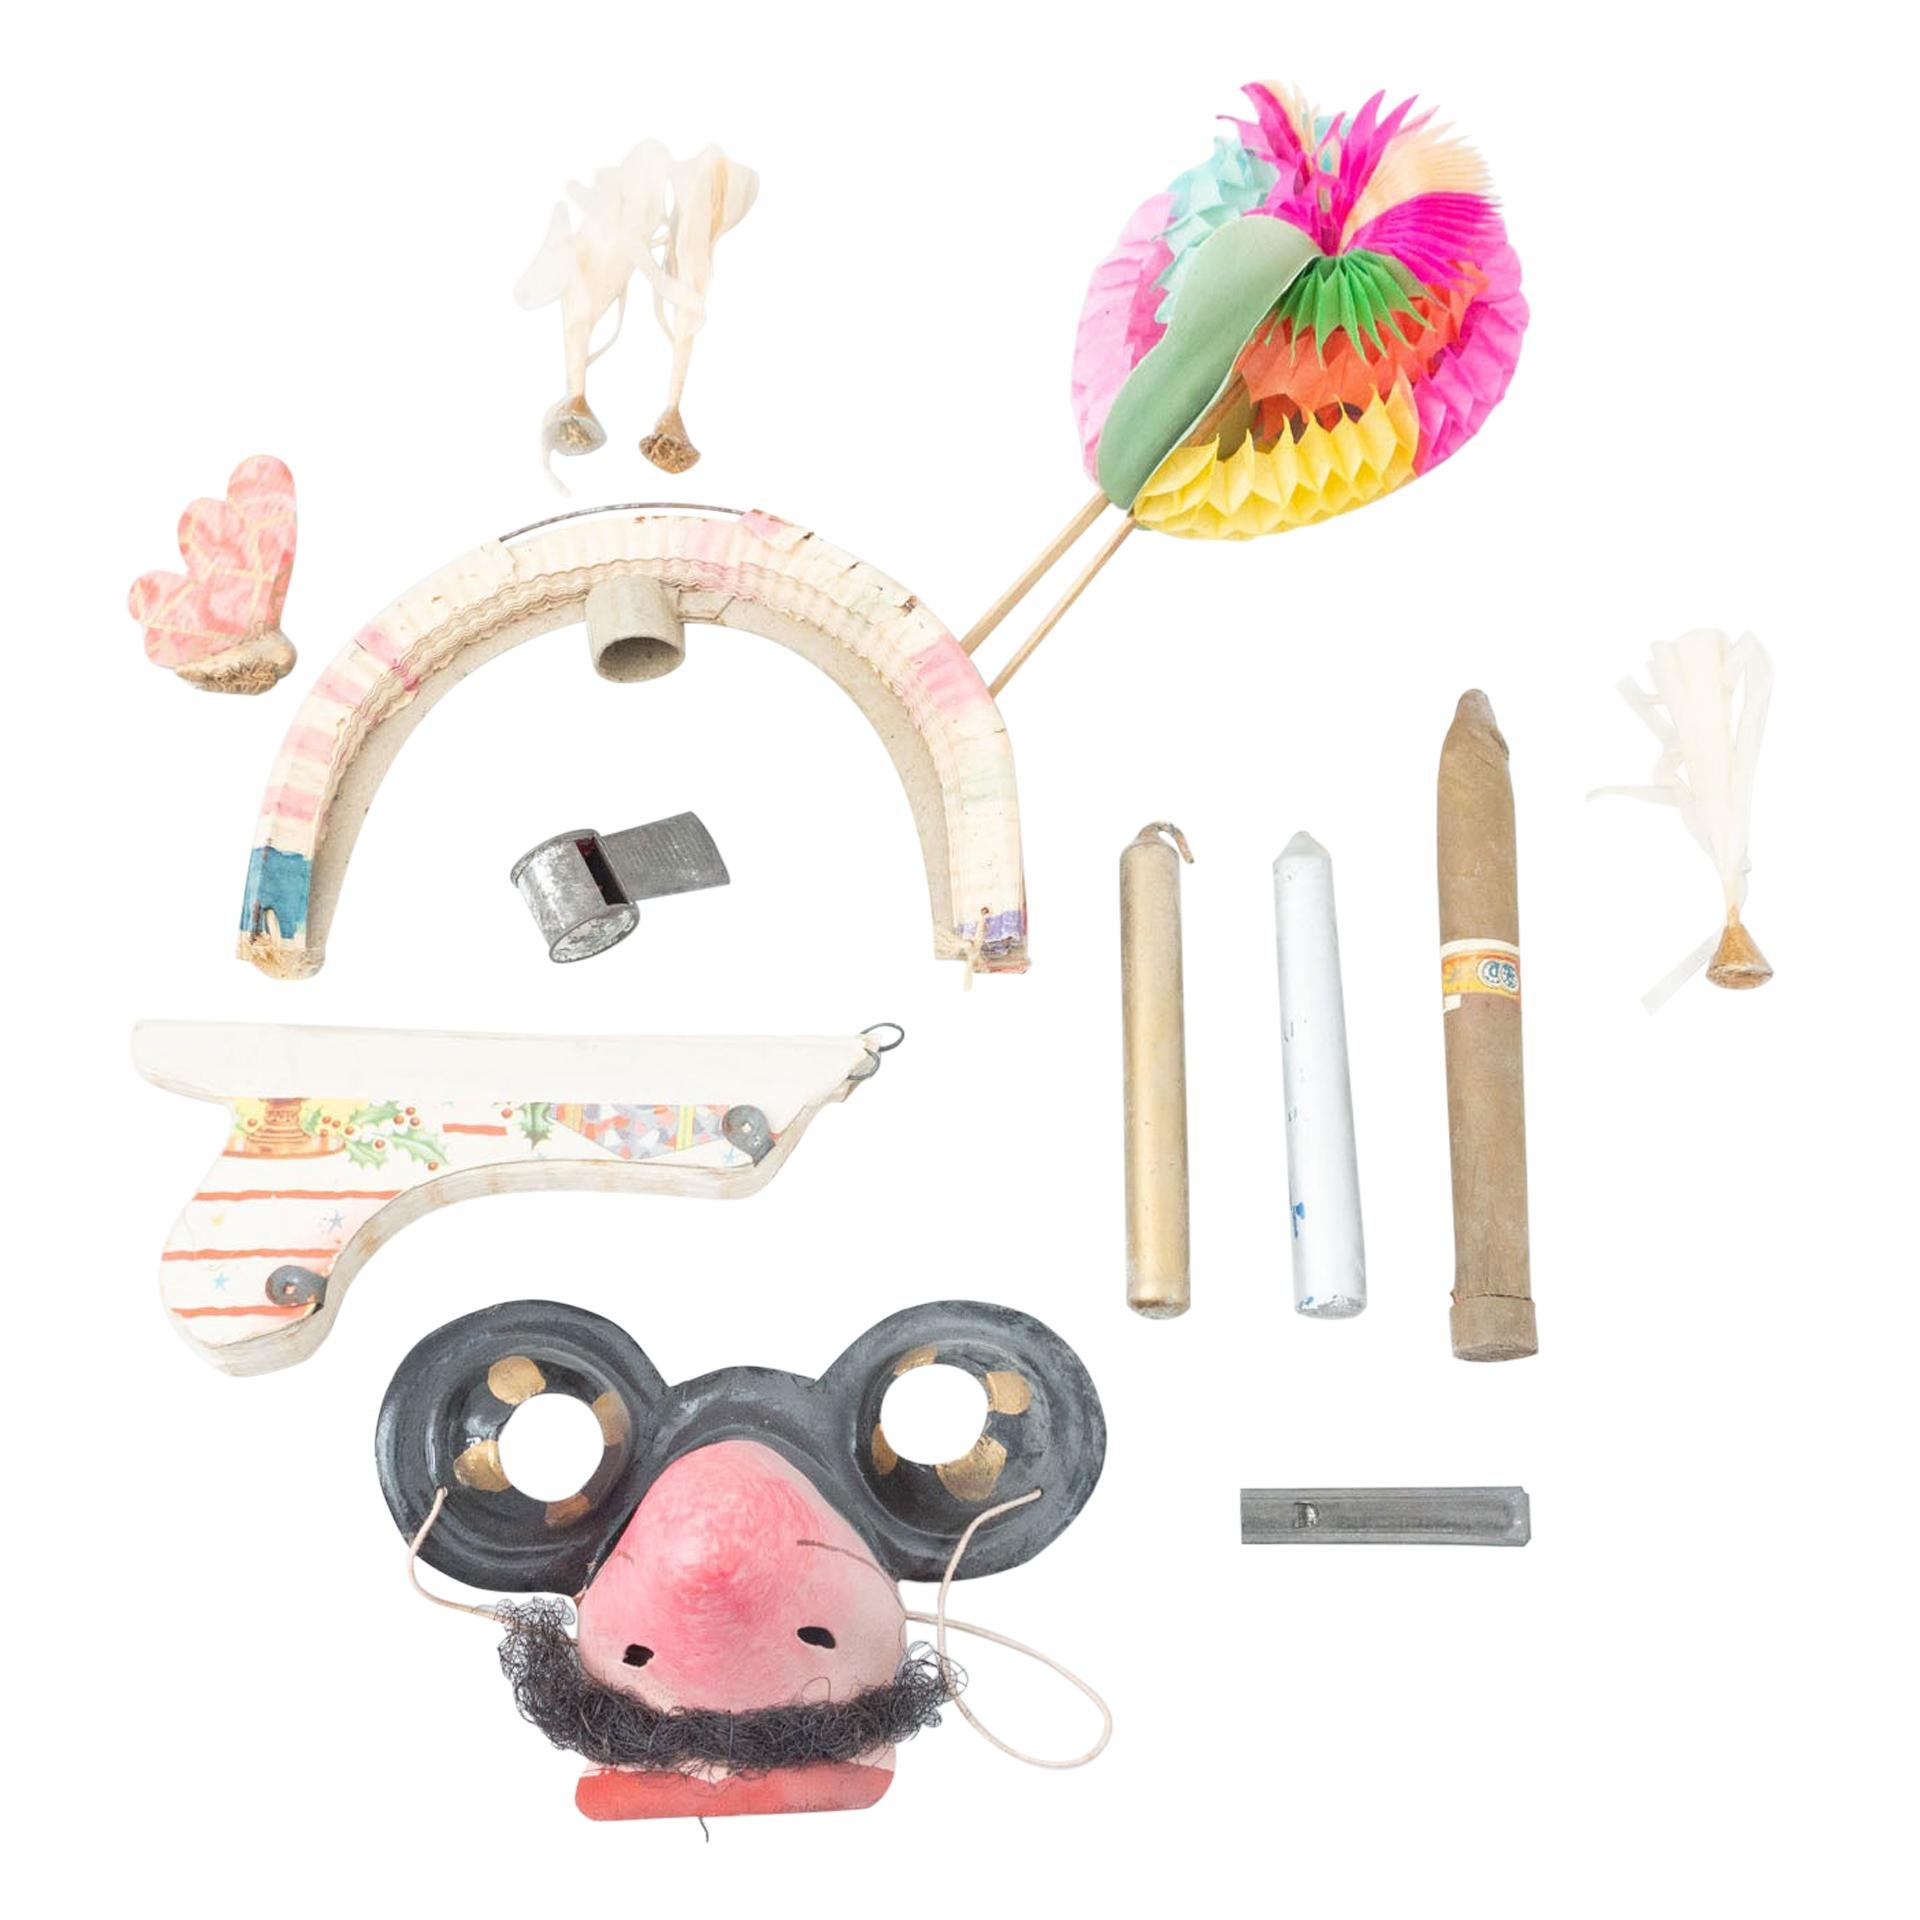 Antique Carnival Party Box with Original Objects, circa 1940